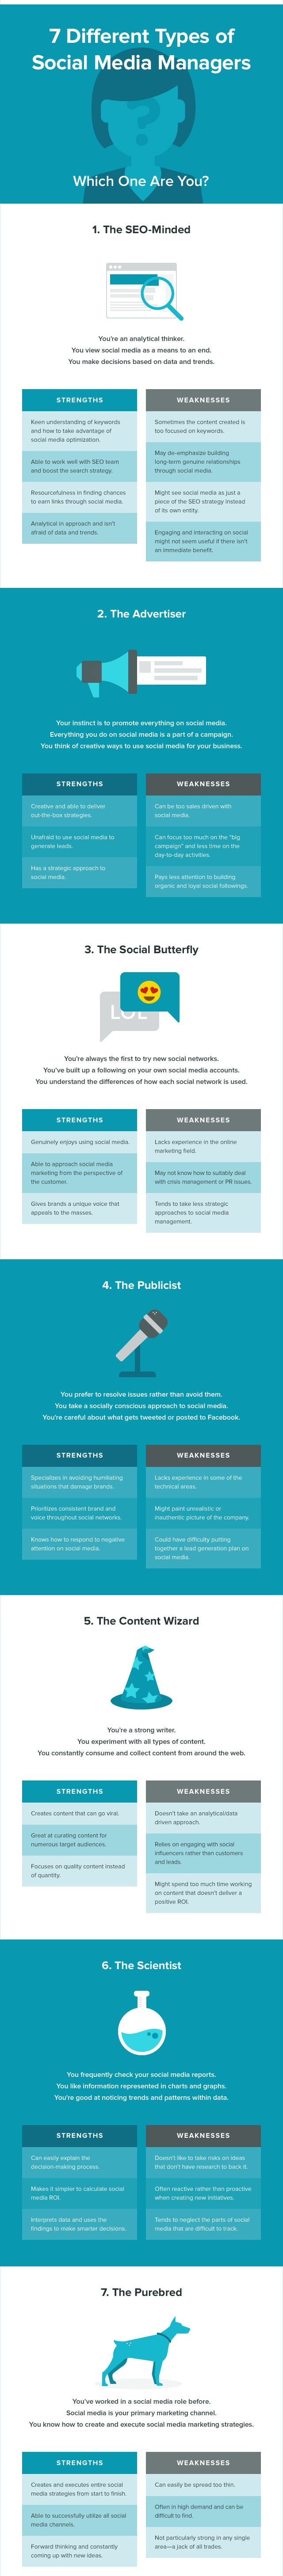 7-different-types-of-social-media-managers-infographic